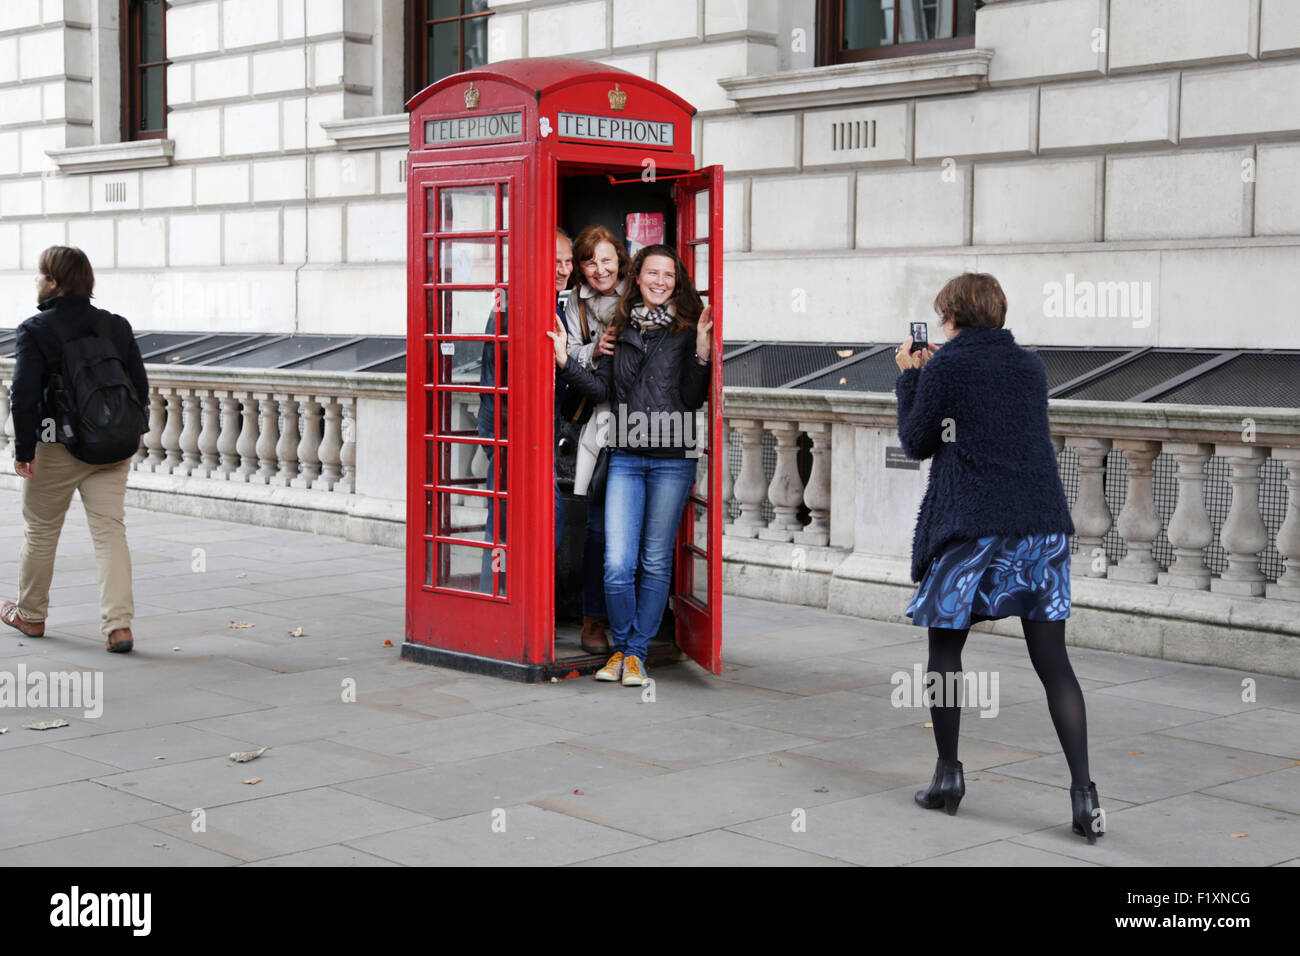 A family group of tourists squeeze into a traditional red English telephone box or kiosk to grab a memorable photo - Stock Image